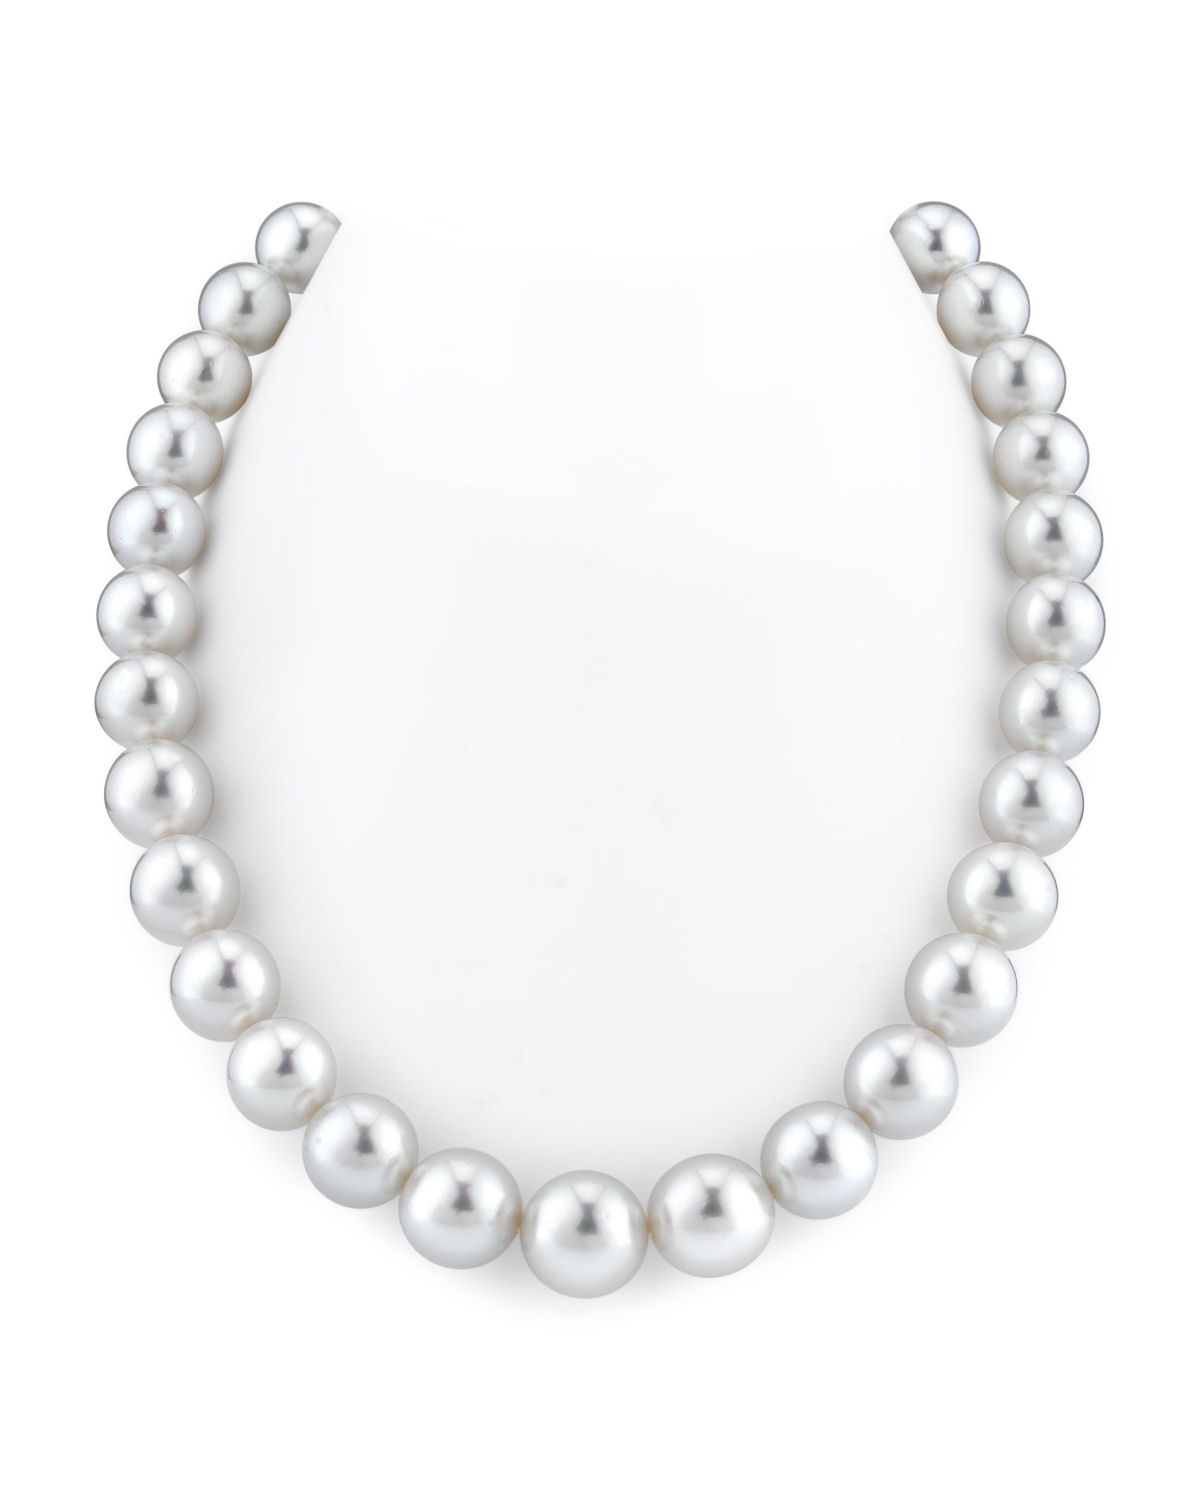 12-14mm White South Sea Pearl Necklace - AAAA Quality